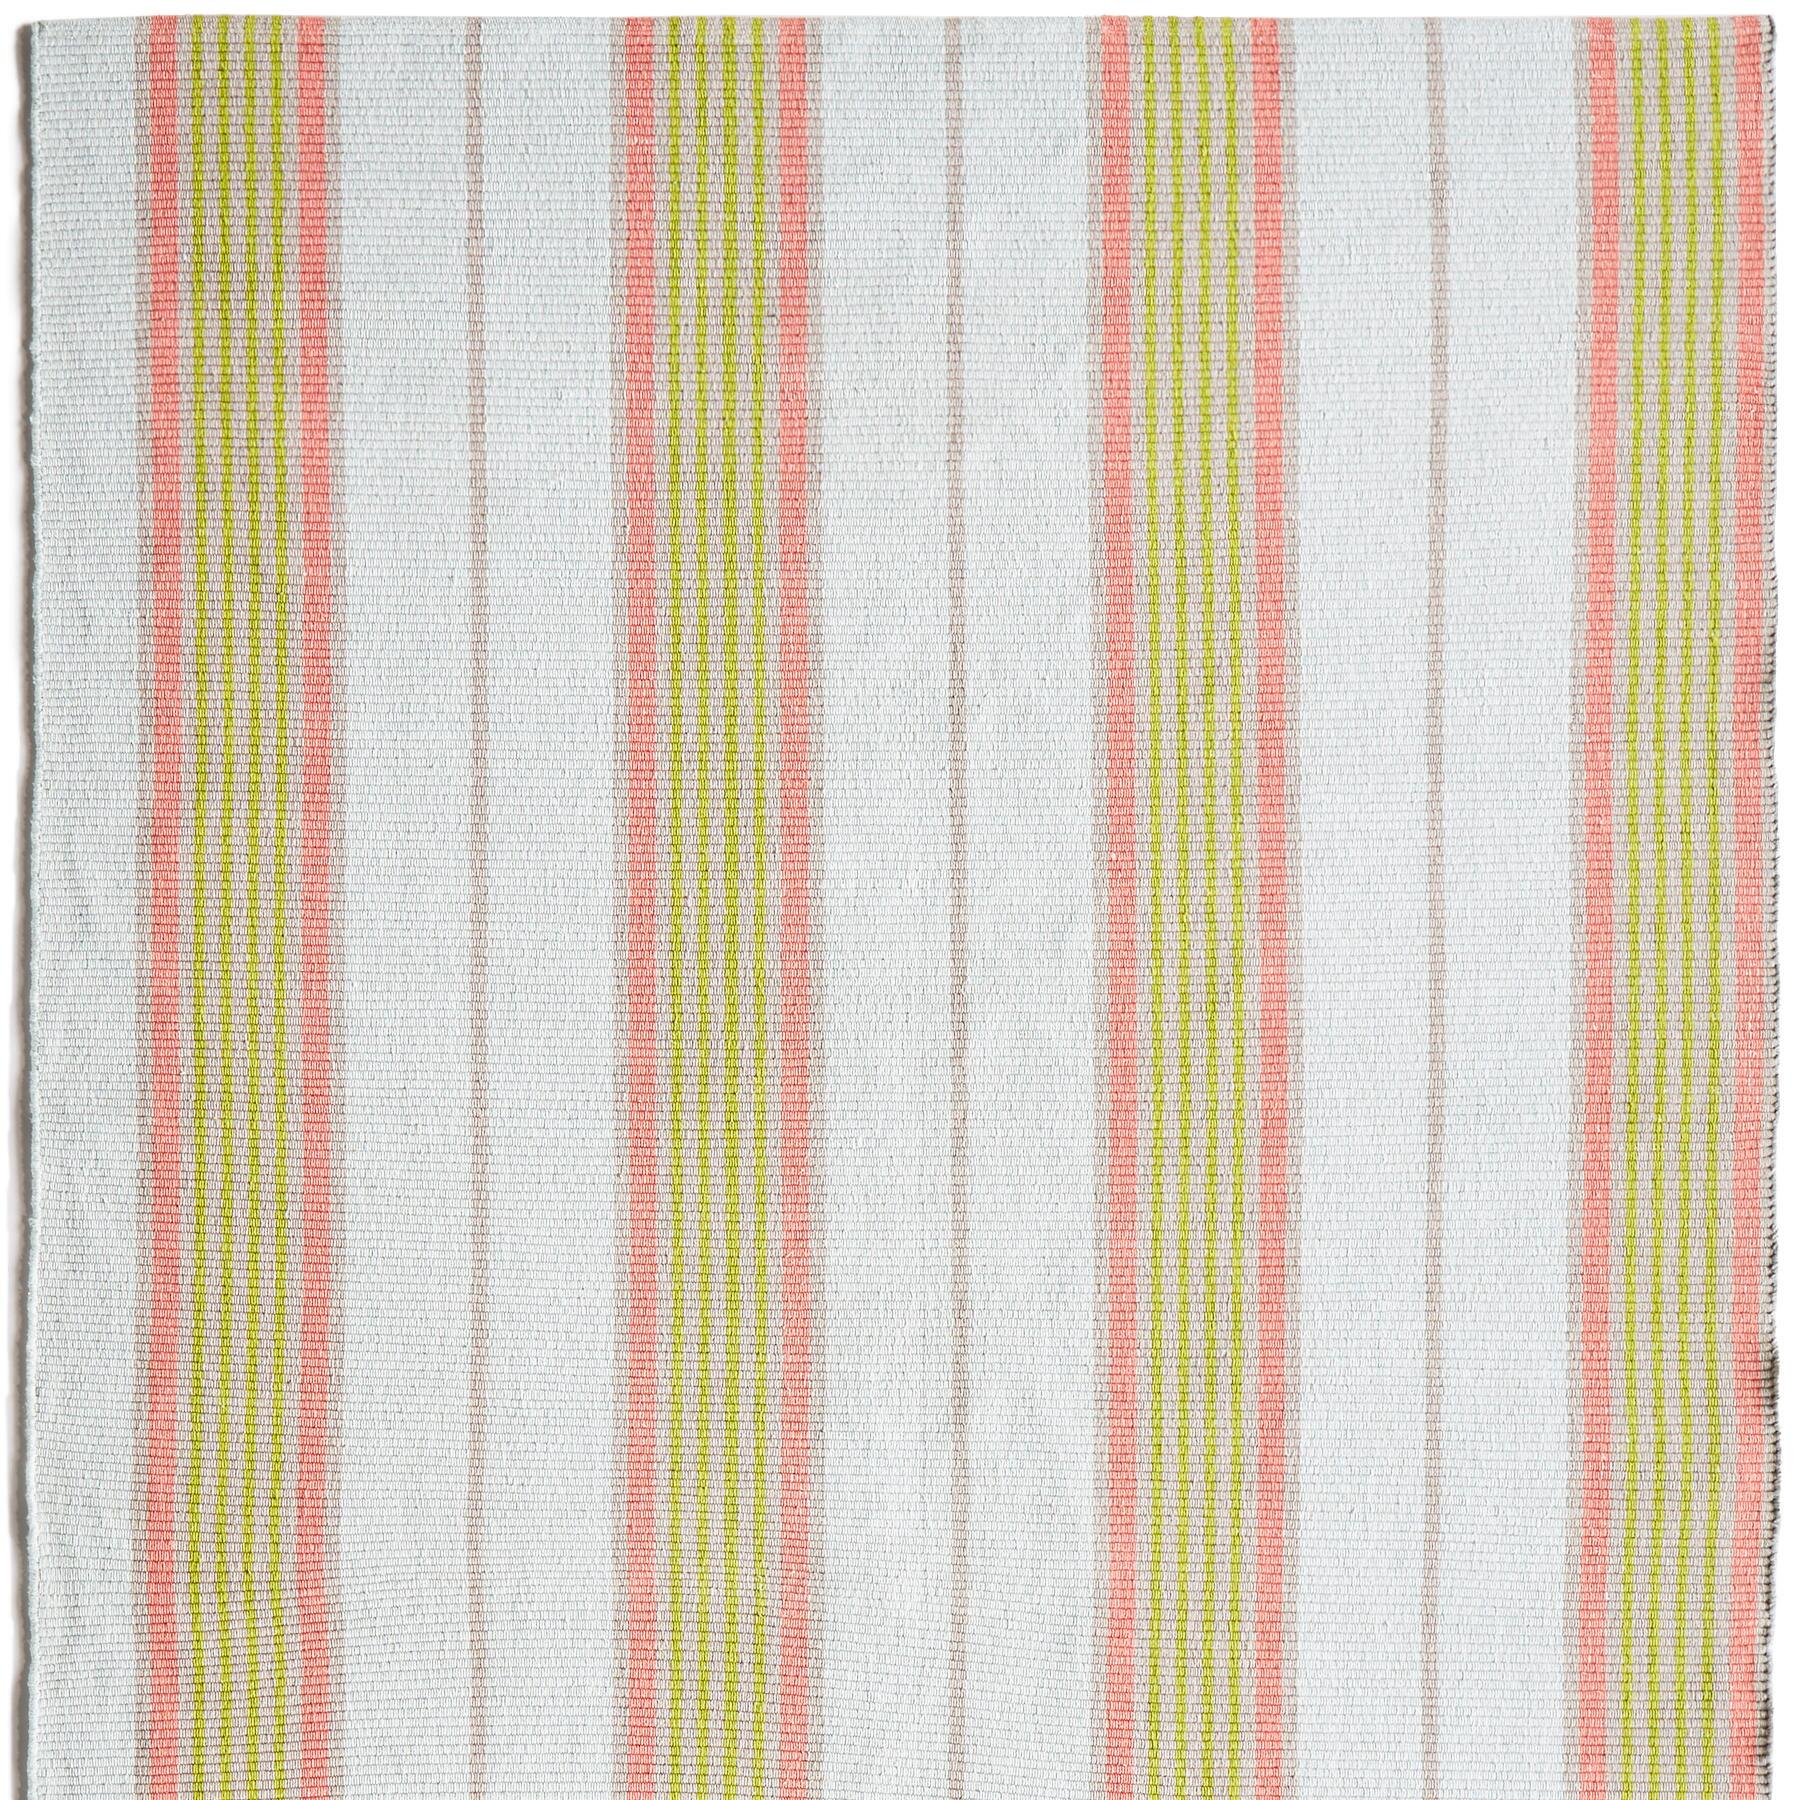 COSTA MESA STRIPES WOVEN RUG, LARGE: View 1